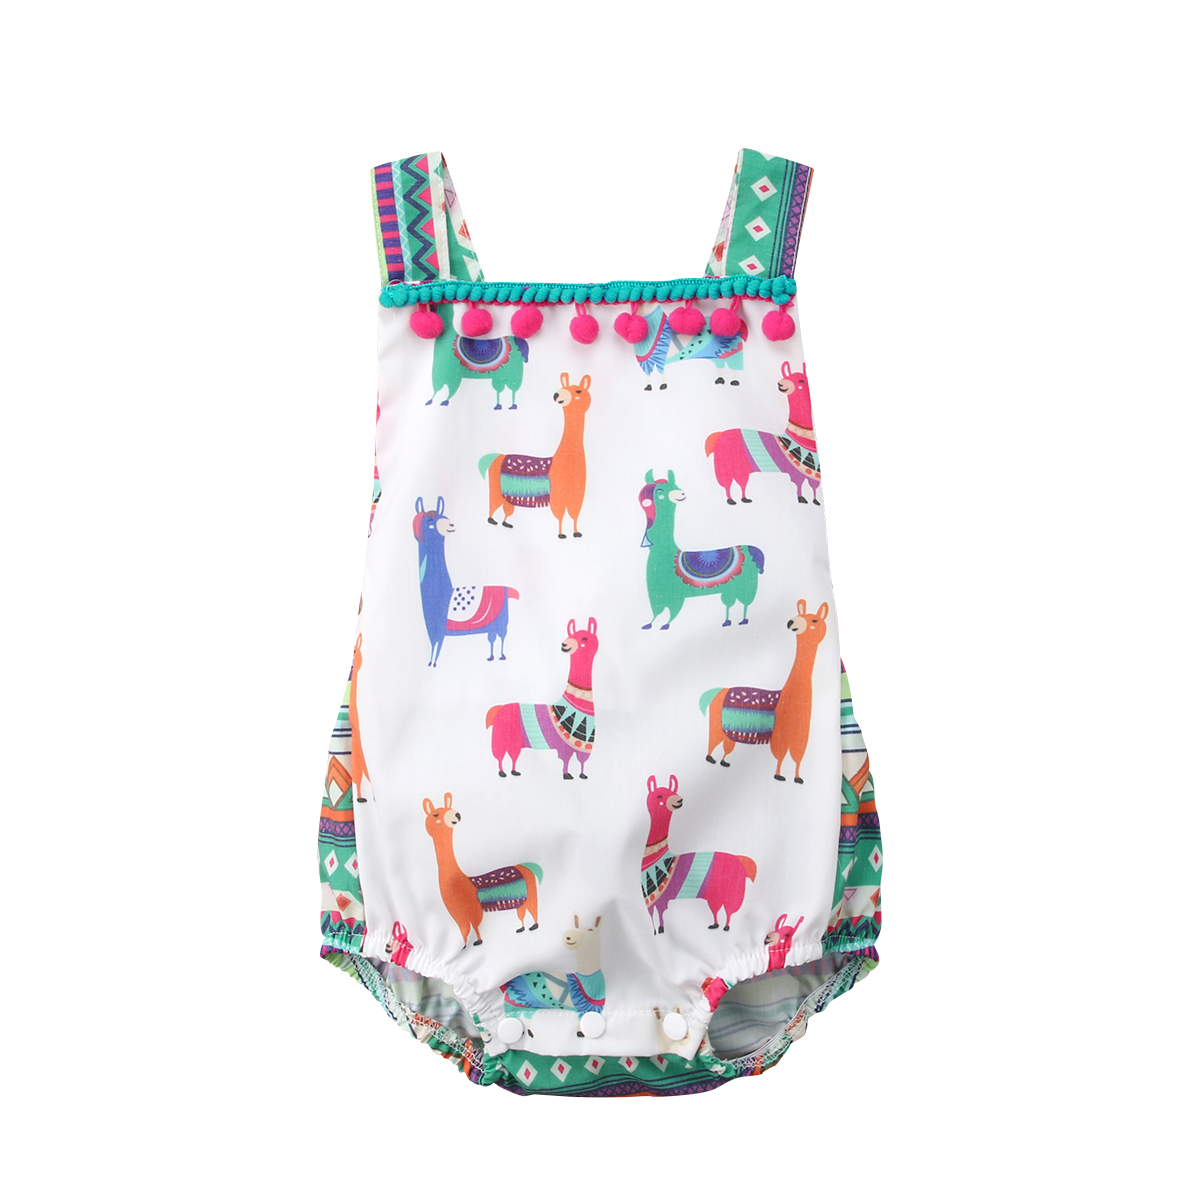 Pudcoco 2019 Lovely Newborn Toddler Baby Girl Romper Tassel Cartoon Printed Clothes Outfits 0-24Months